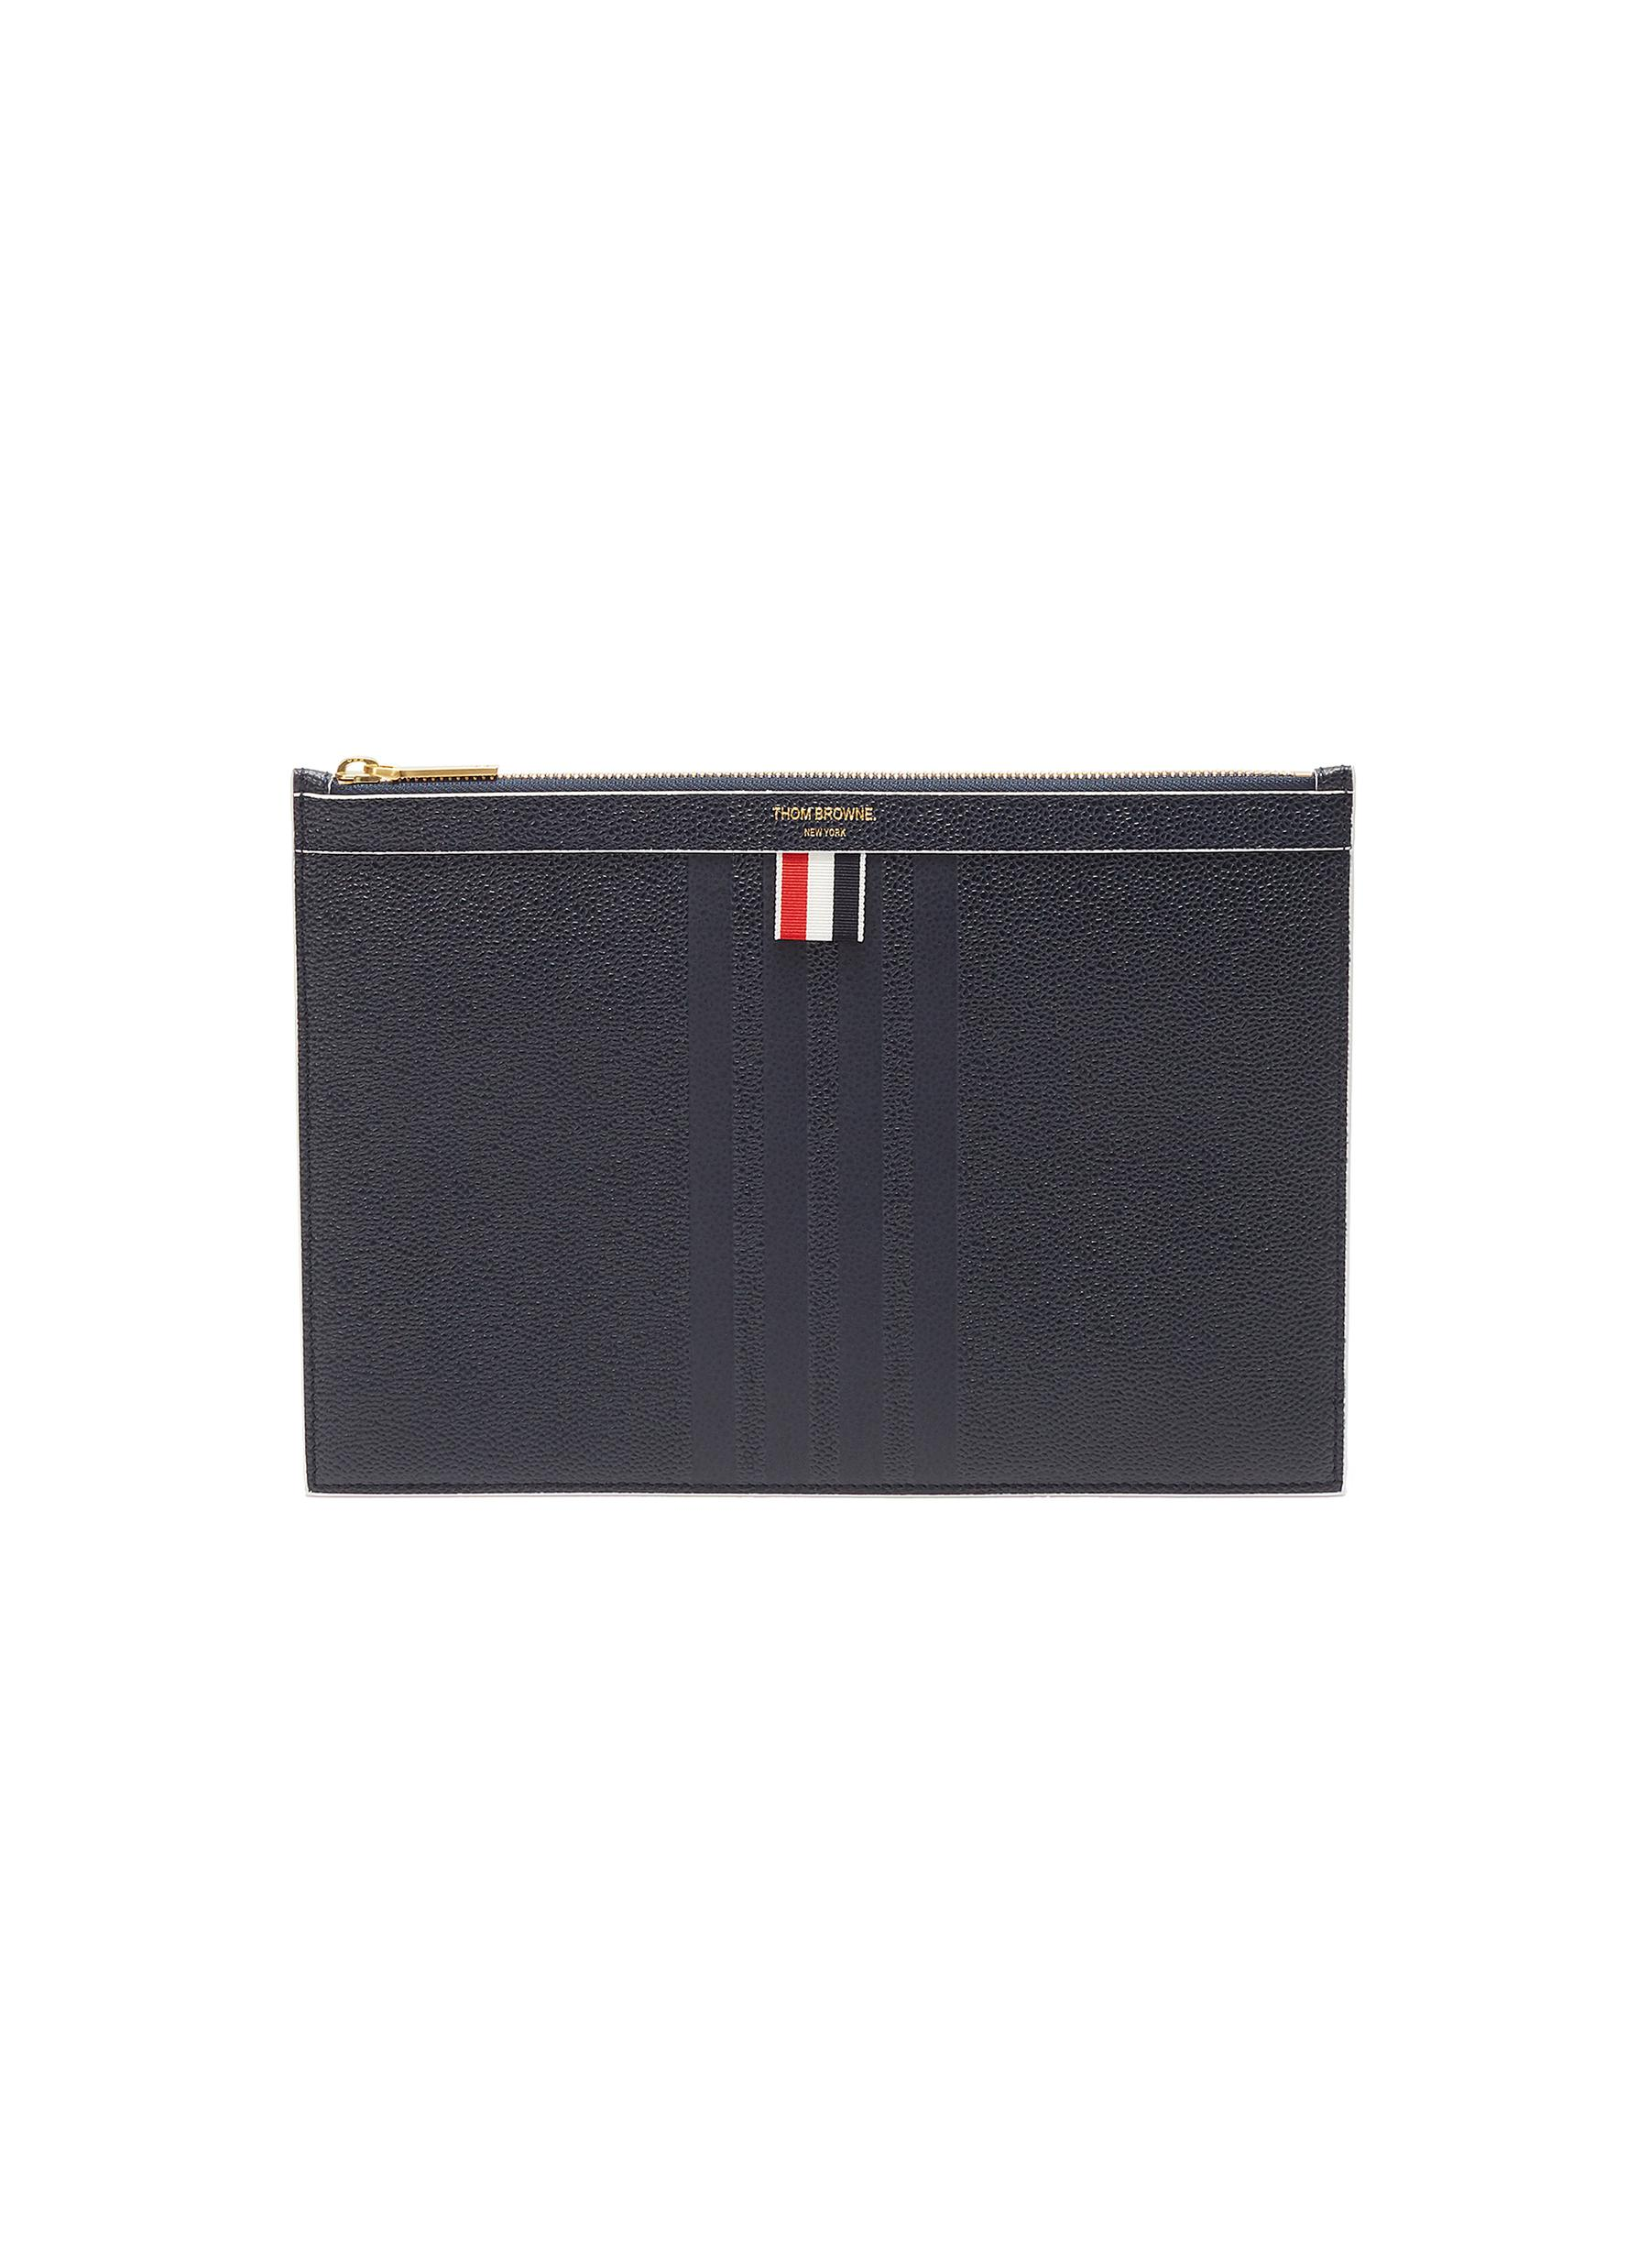 b9608dc4fa Main View - Click To Enlarge - THOM BROWNE - Stripe pebble grain leather  tablet holder